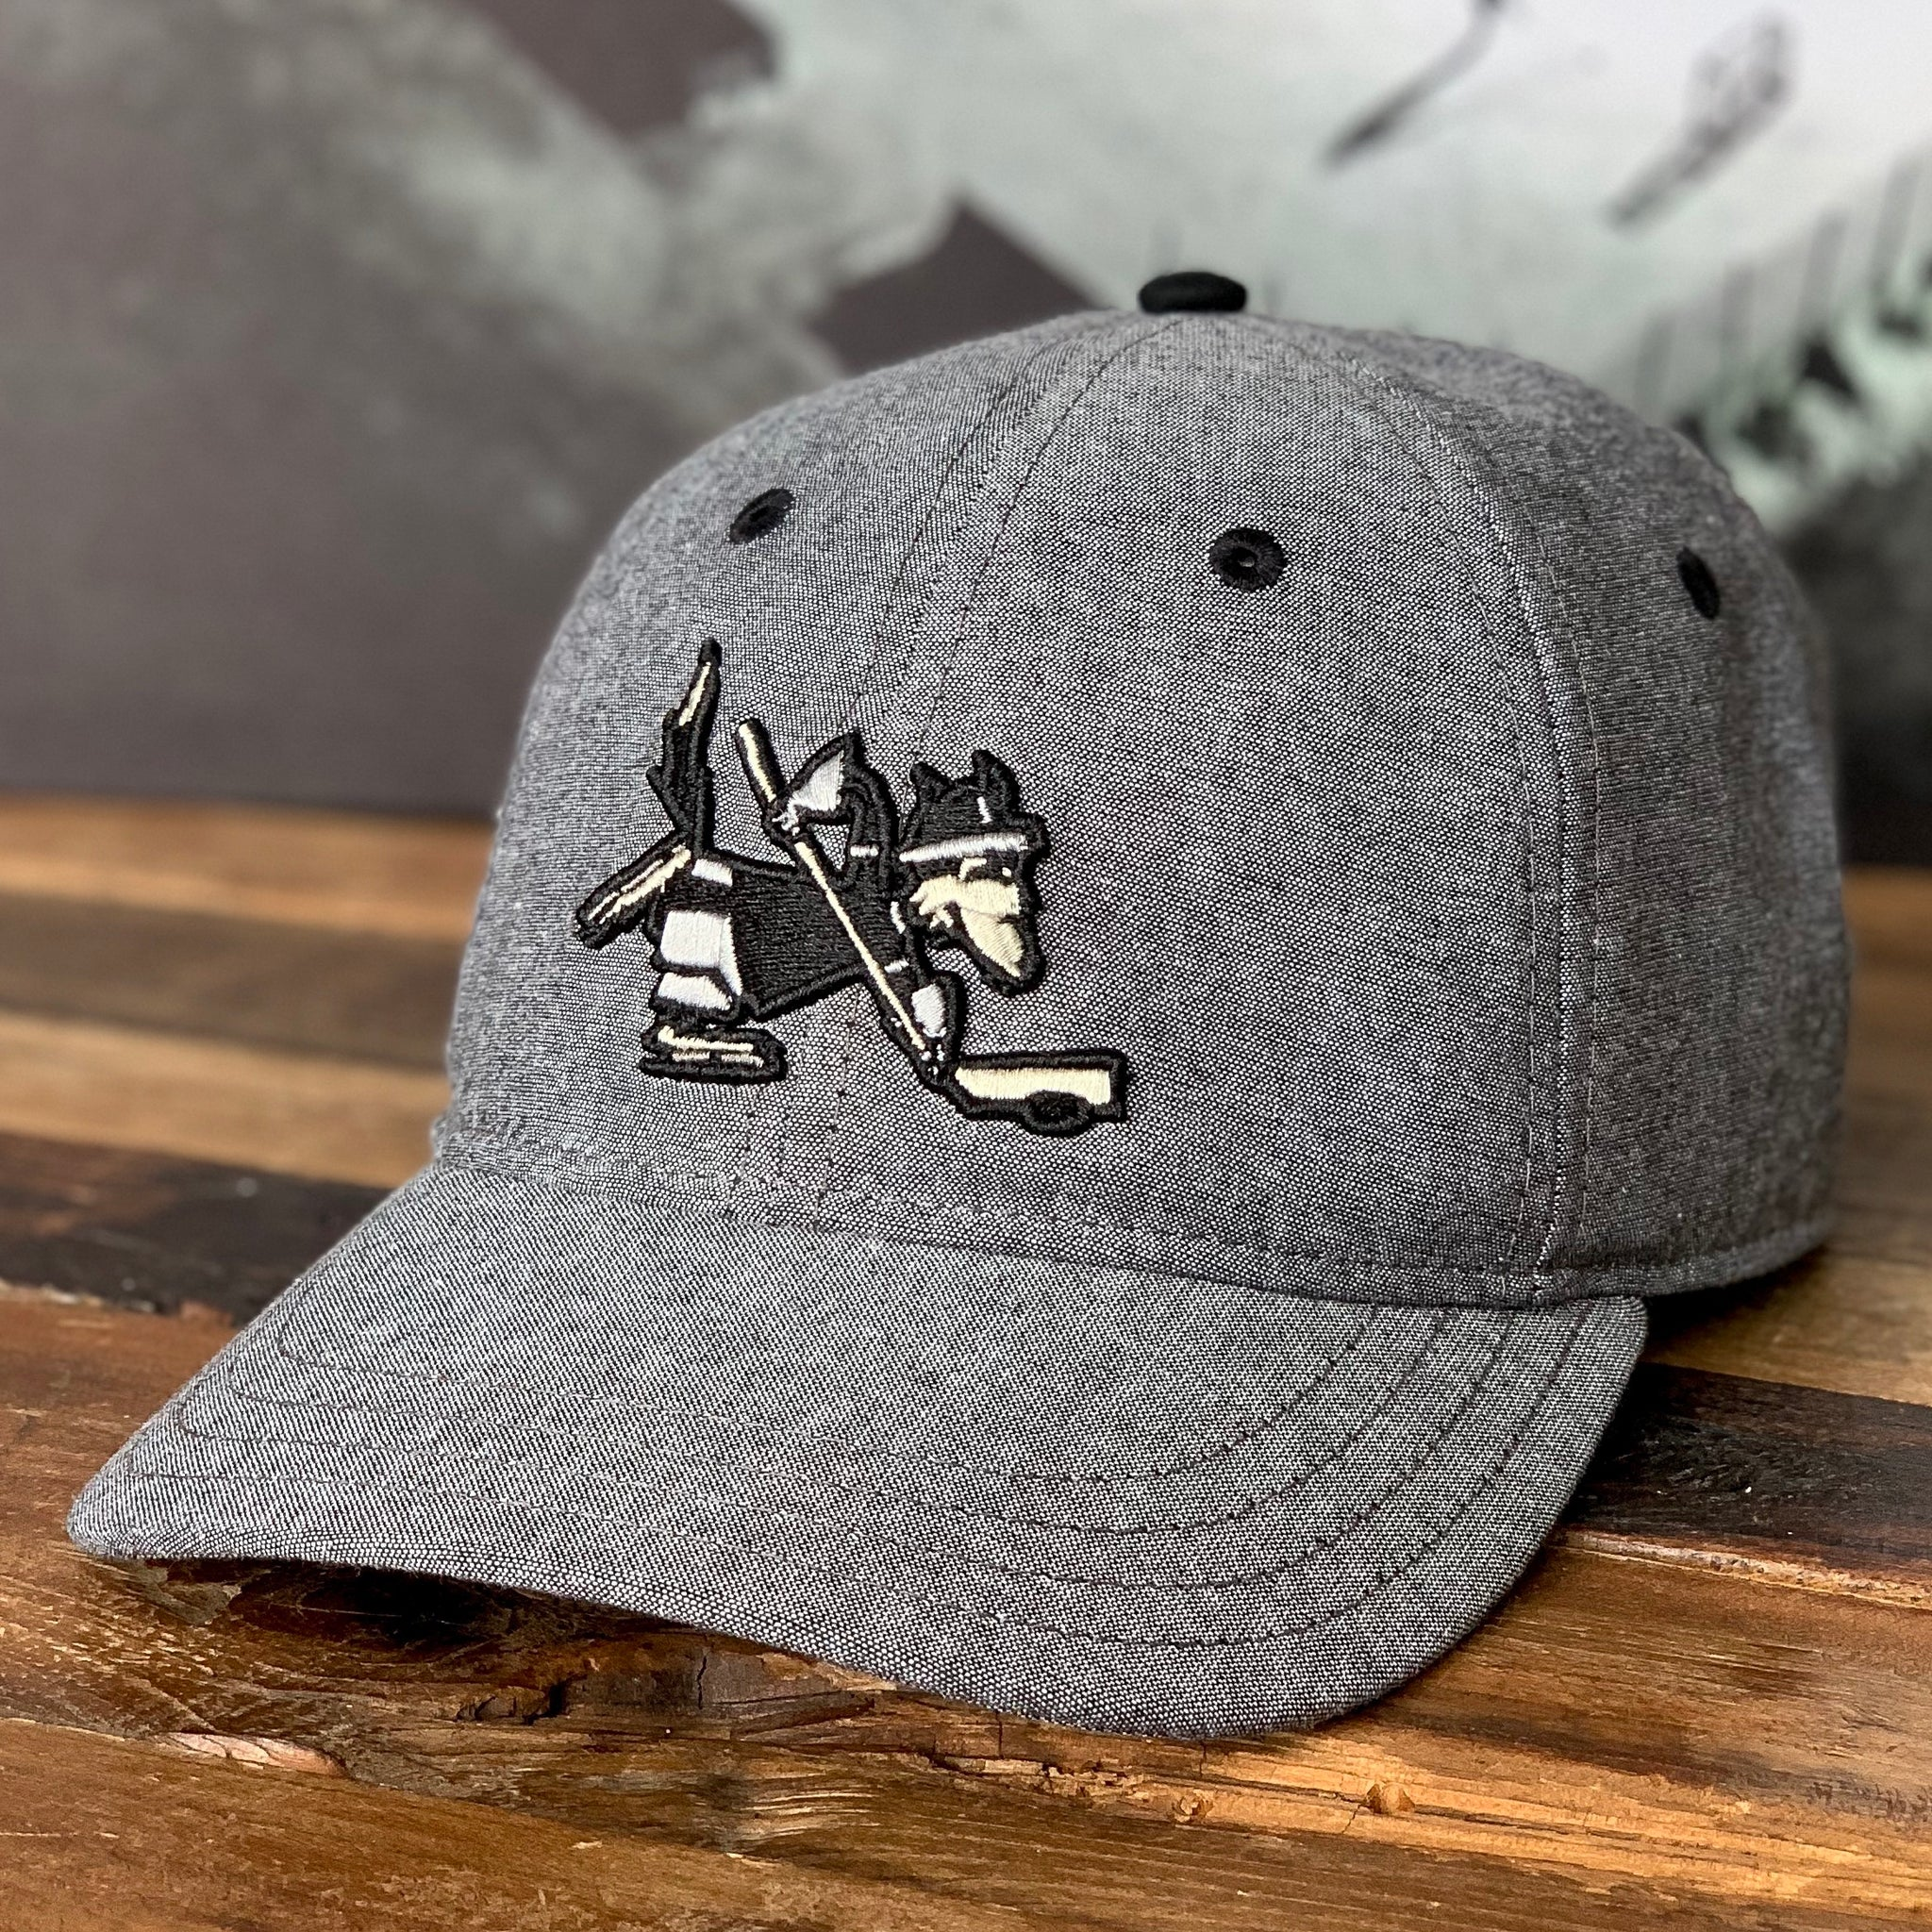 Mascot (Blackout Chambray) - Beauty Status Hockey Co.